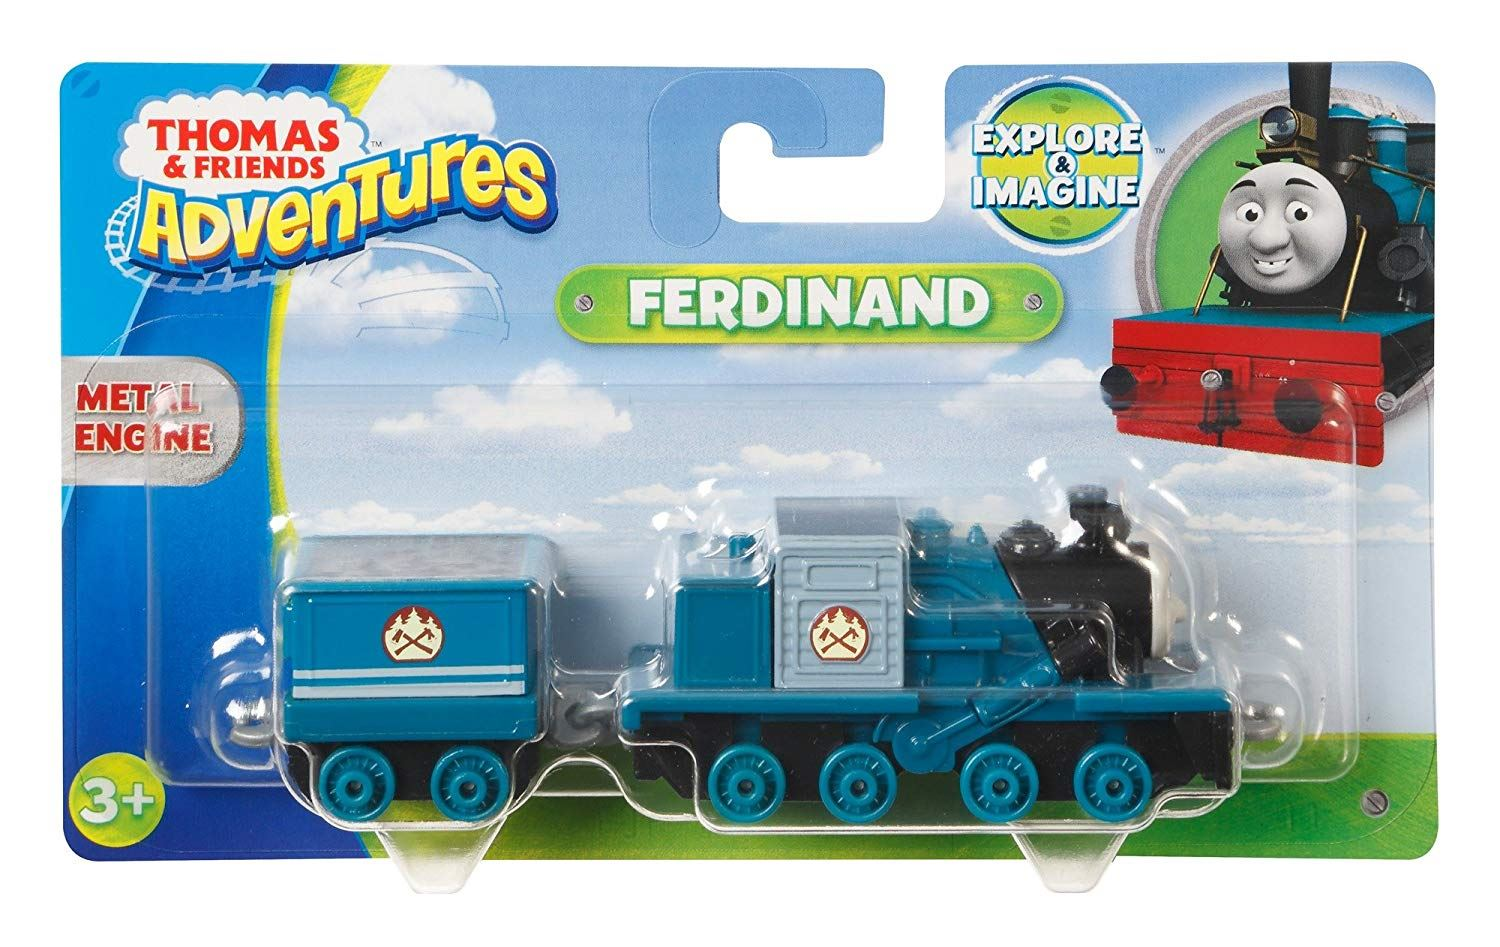 Thomas-amp-Friends-Adventures-Ferdinand-lexi-Shane-Dash-Huge-Bill-Trains Indexbild 13